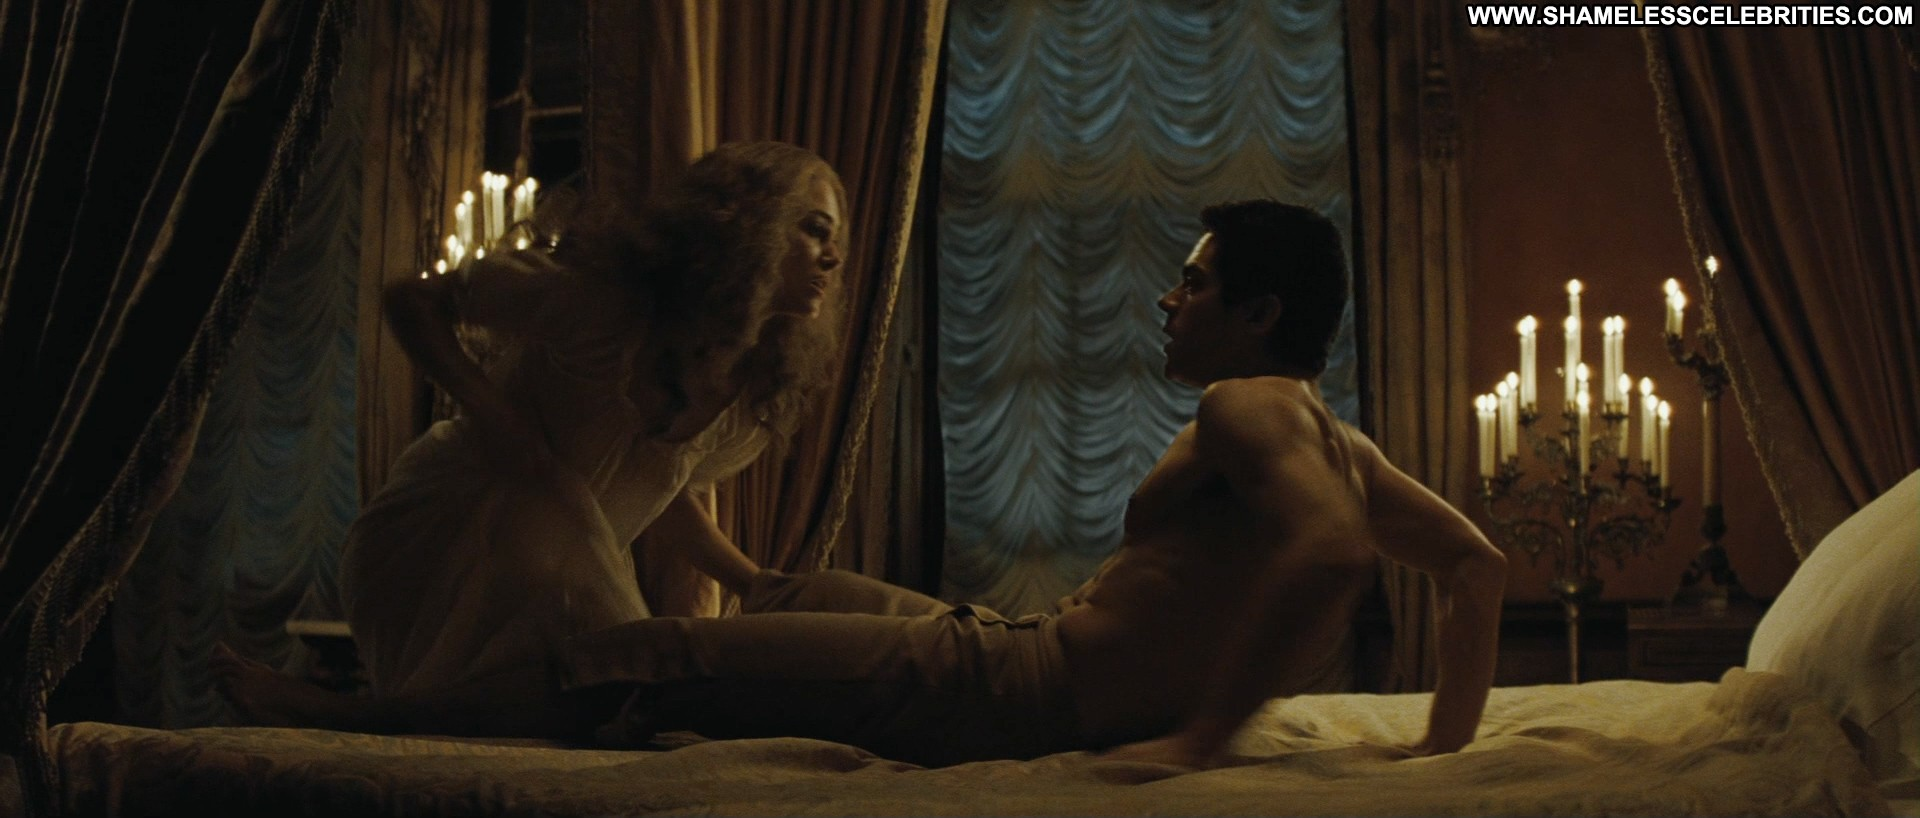 Would Actors Rather Have Real Sex On Camera Than Fake Sex Scenes